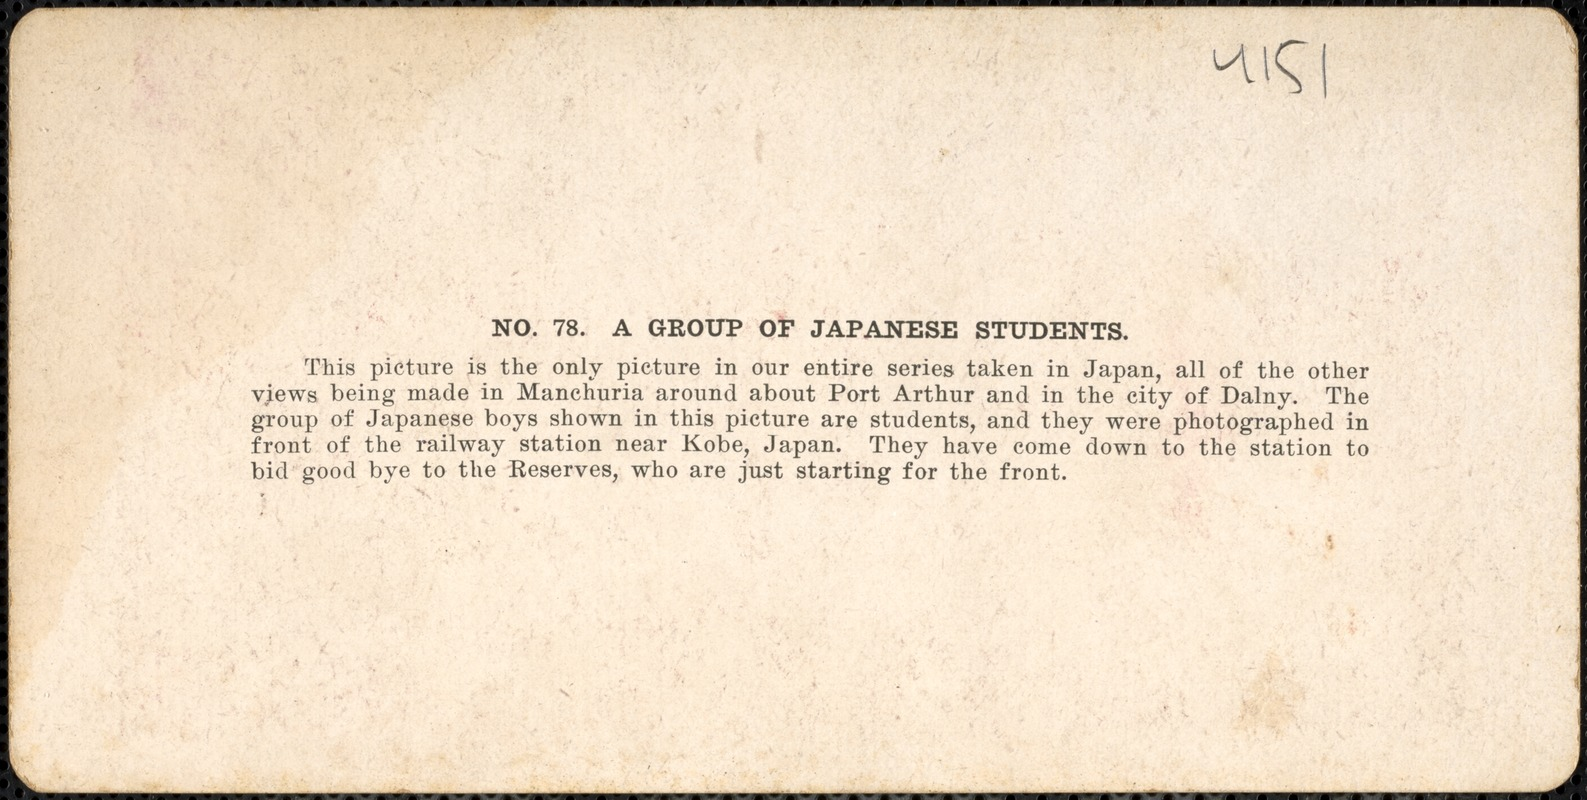 A group of Japanese students